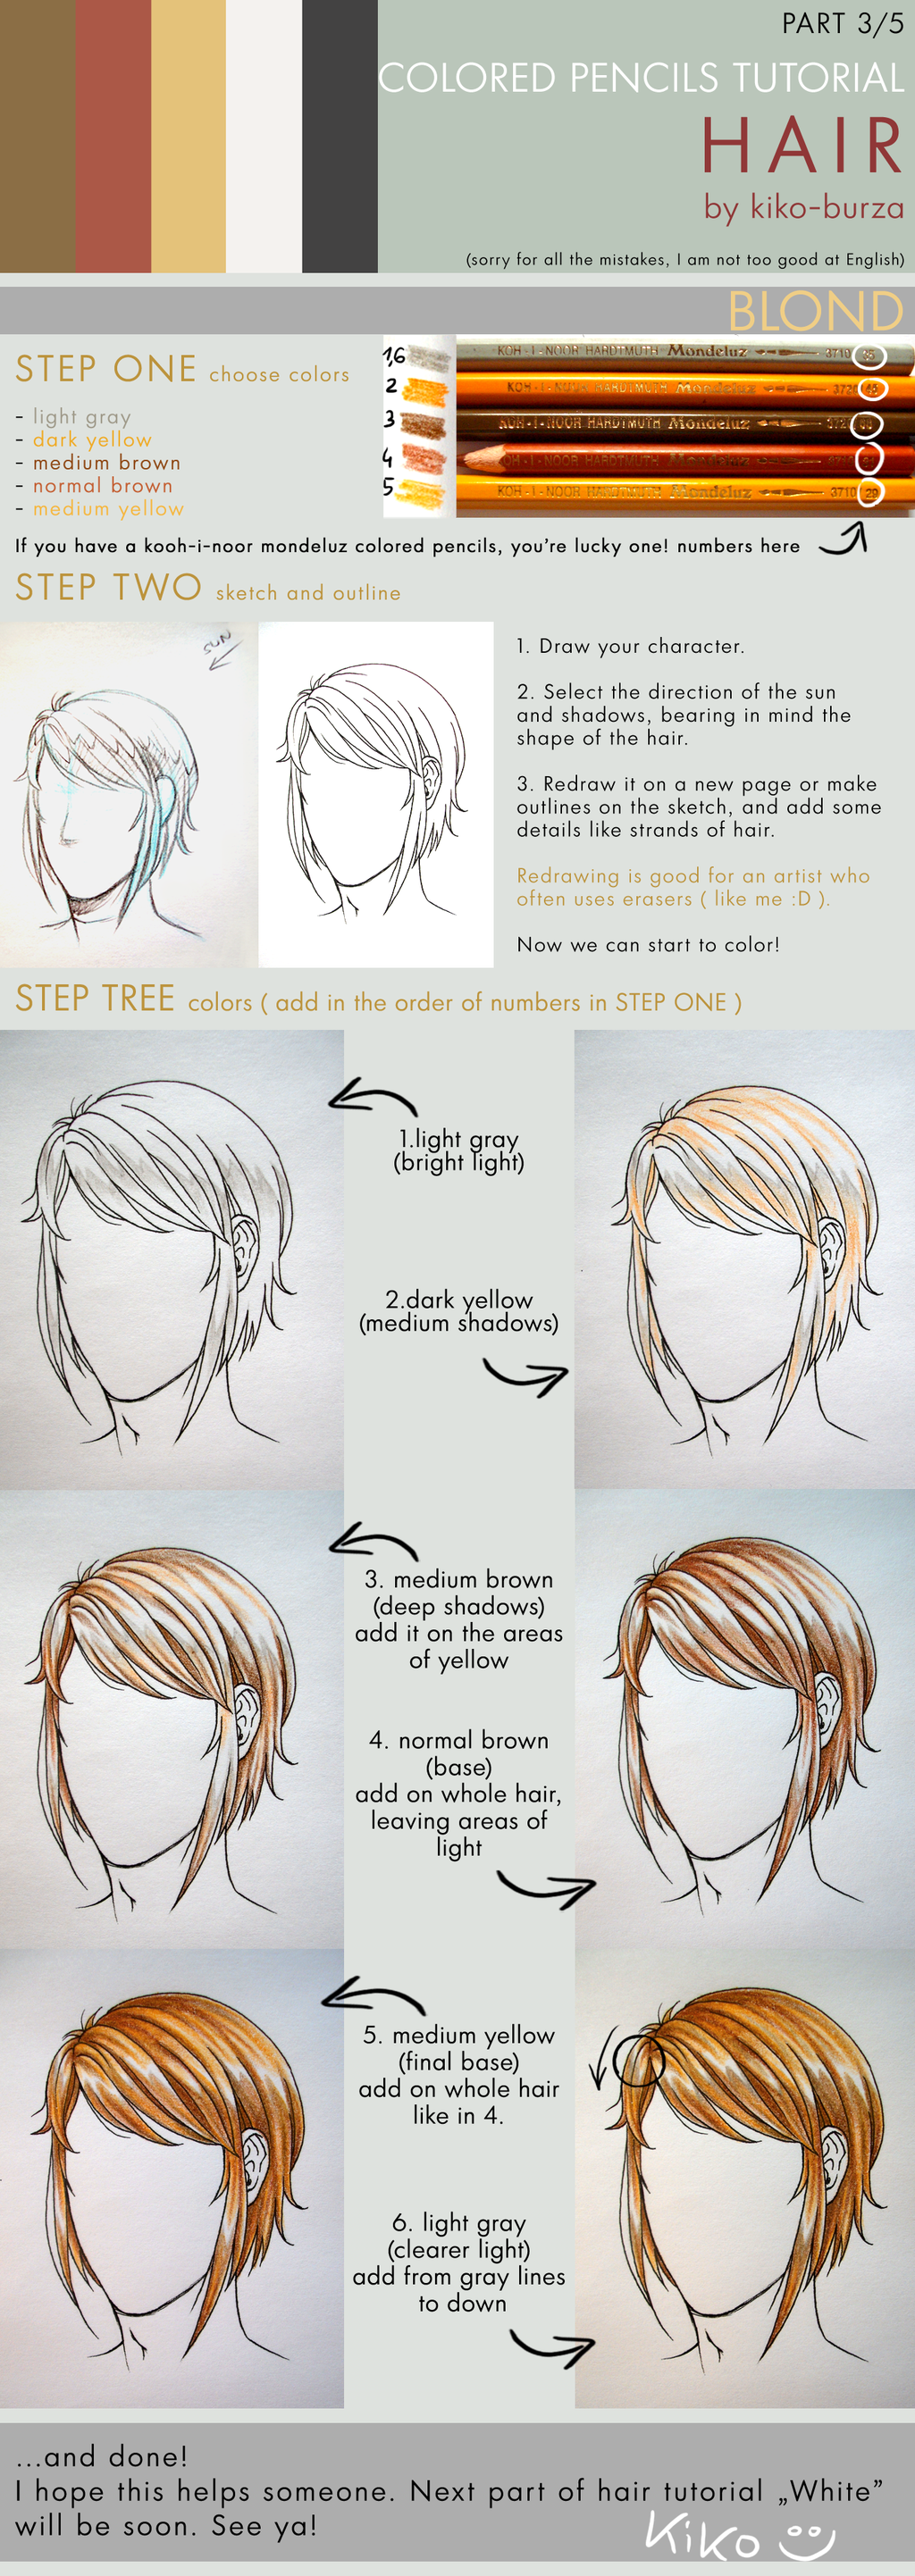 Colored Pencils Tutorial Hair Part 3 Blond By Kiko Burza Deviantart Com On Deviantart Colored Pencil Tutorial Color Pencil Drawing Colored Pencils